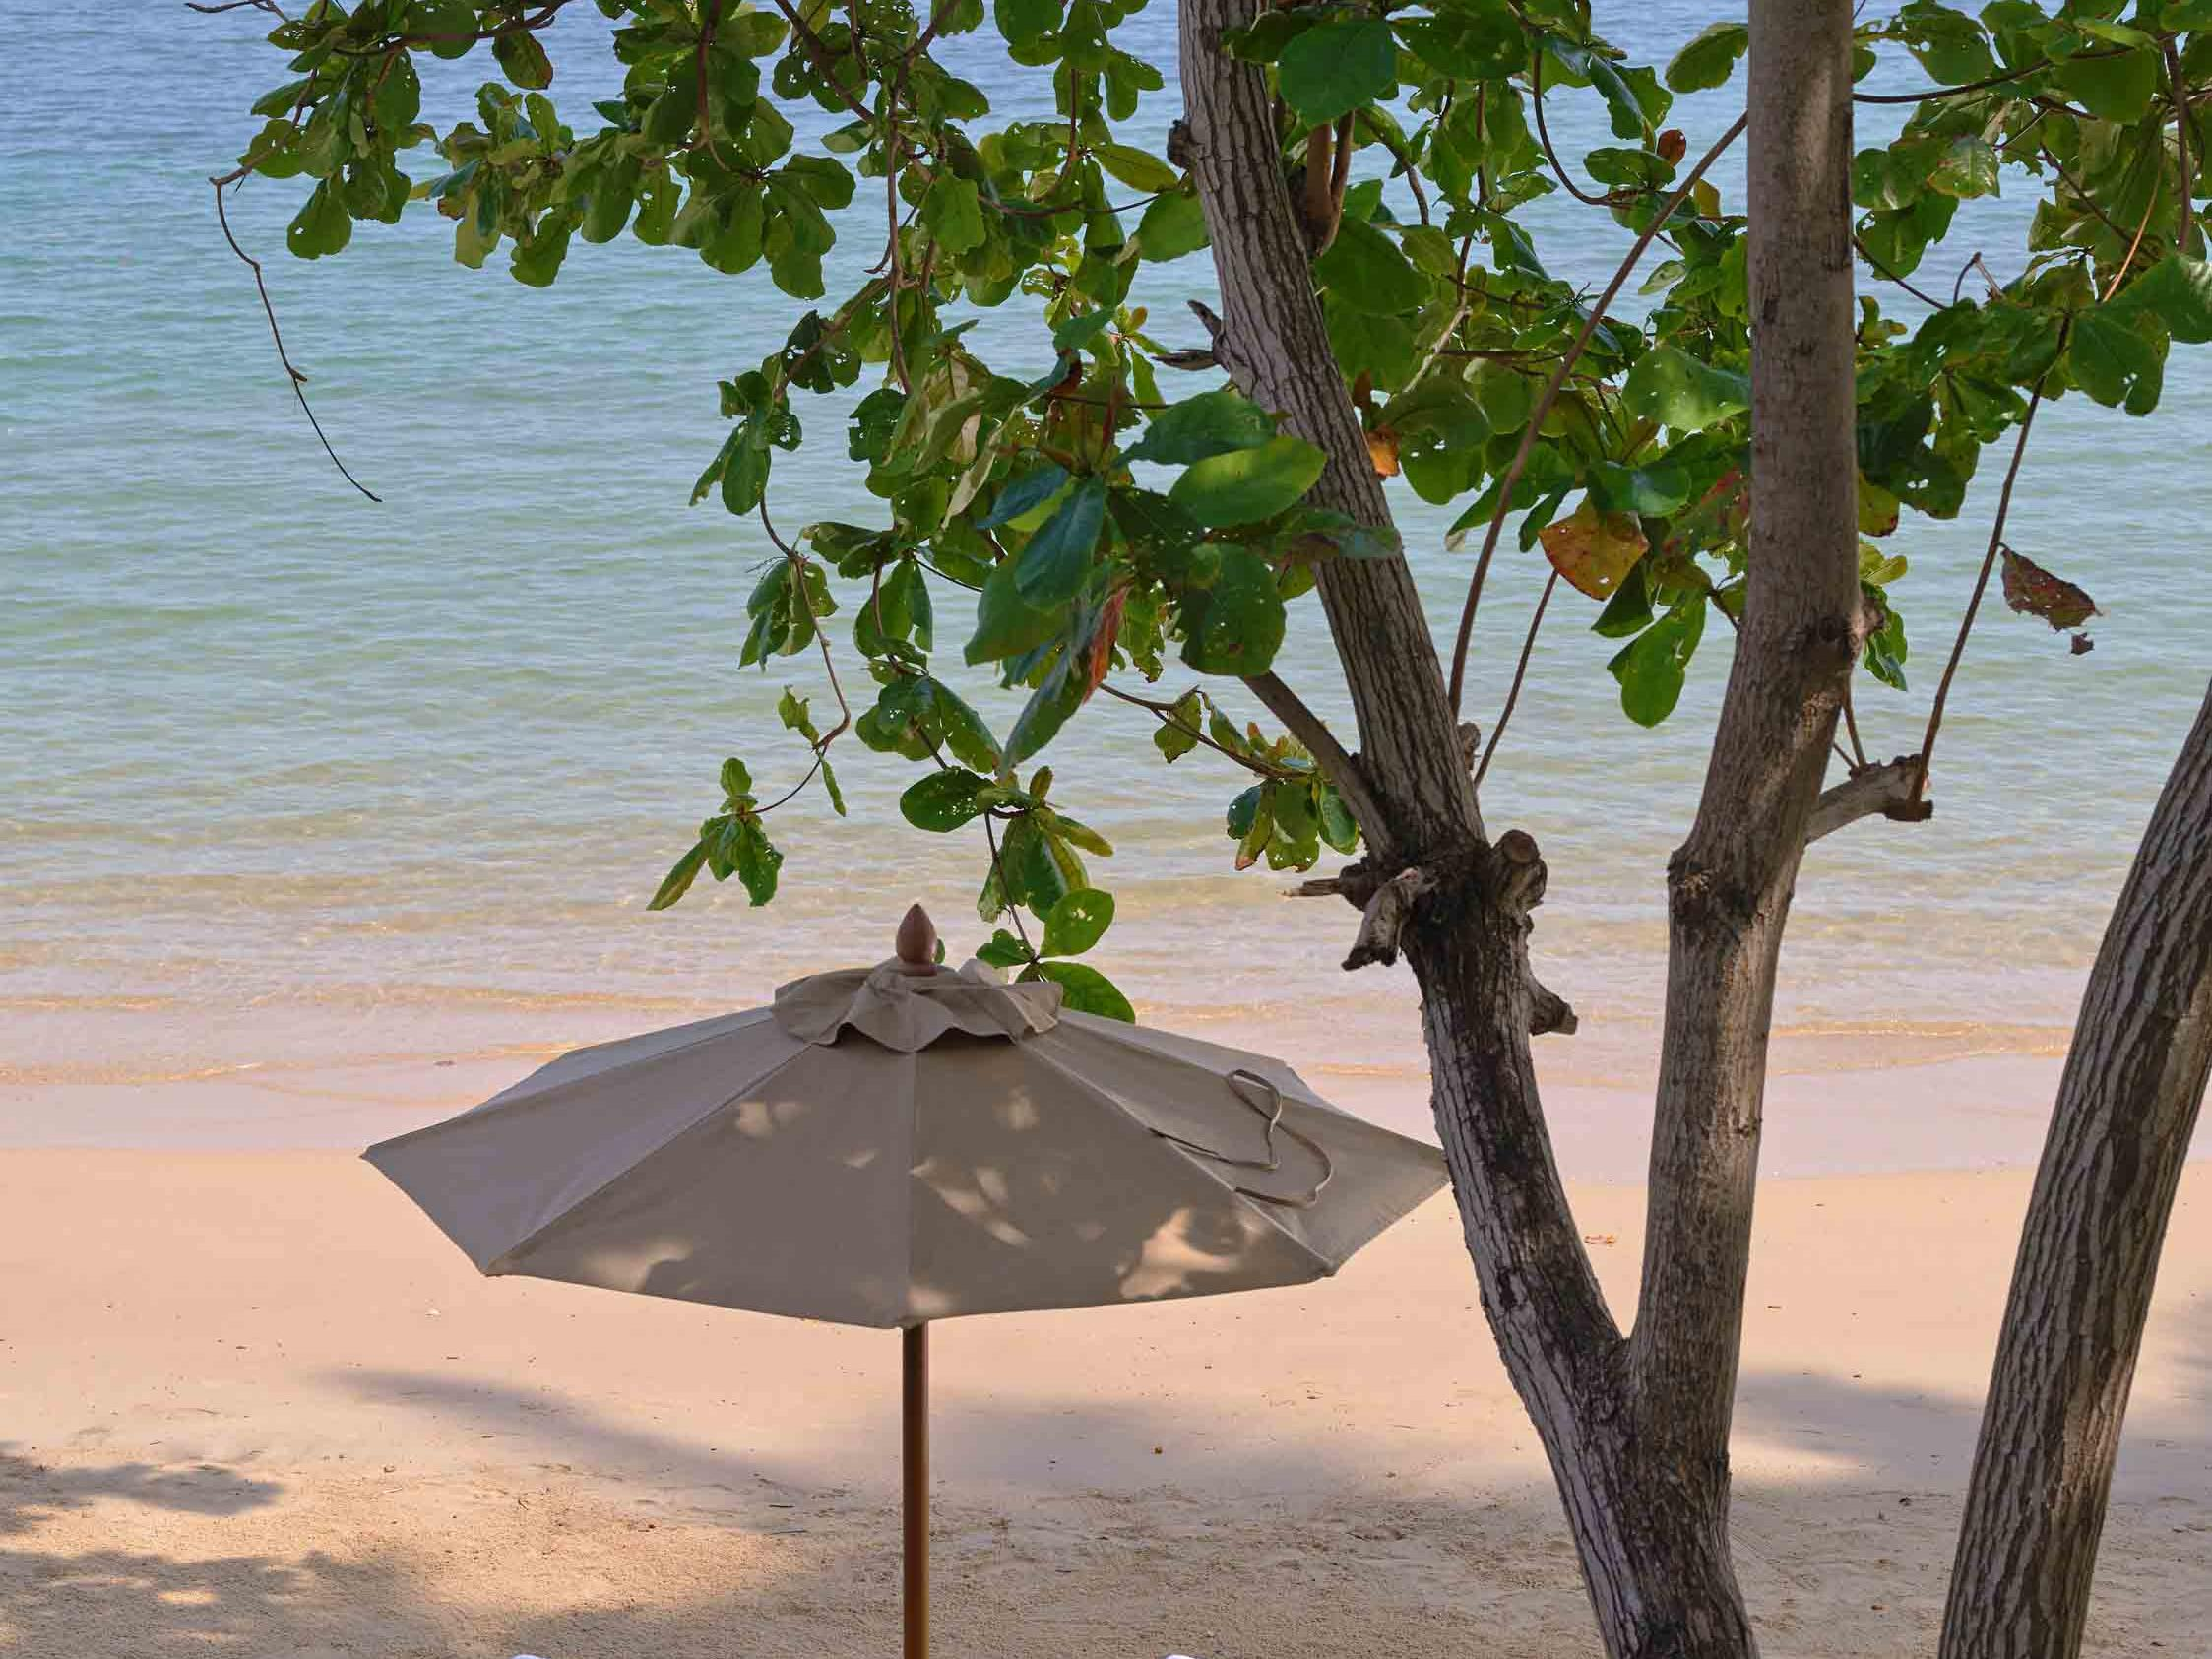 A portrait view of sunchairs, a tree and the ocean